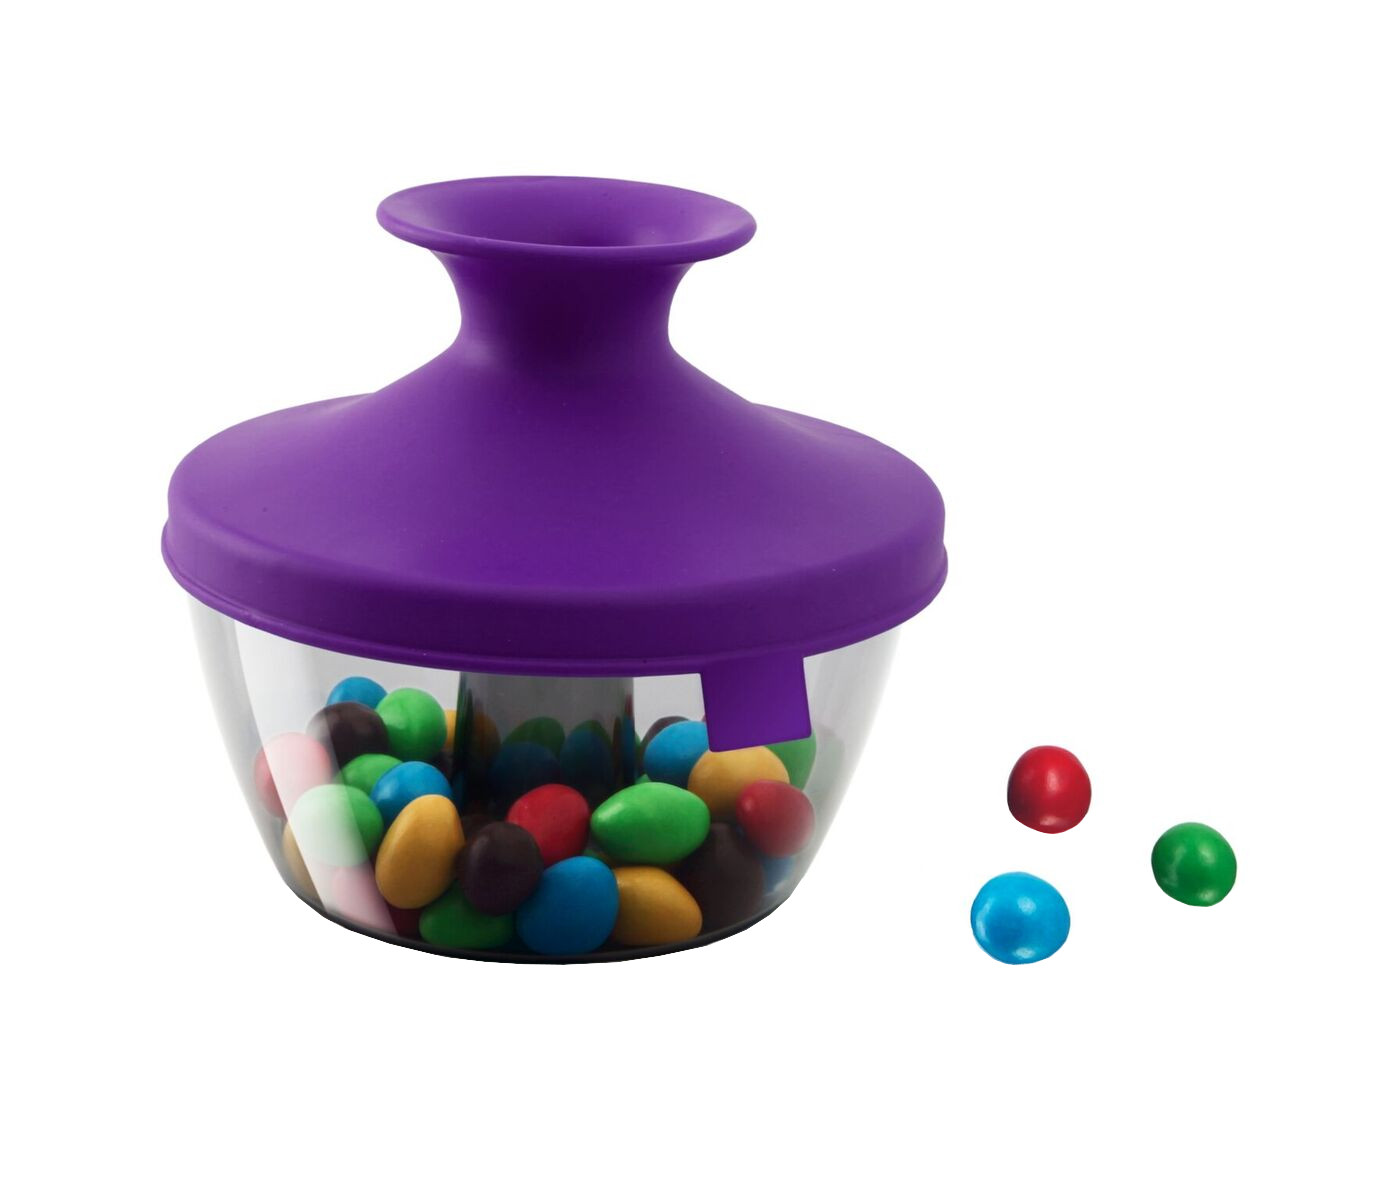 Tomorrow's Kitchen Purple 17 Ounce PopSome Nuts & Candy Bowl with Sleeve